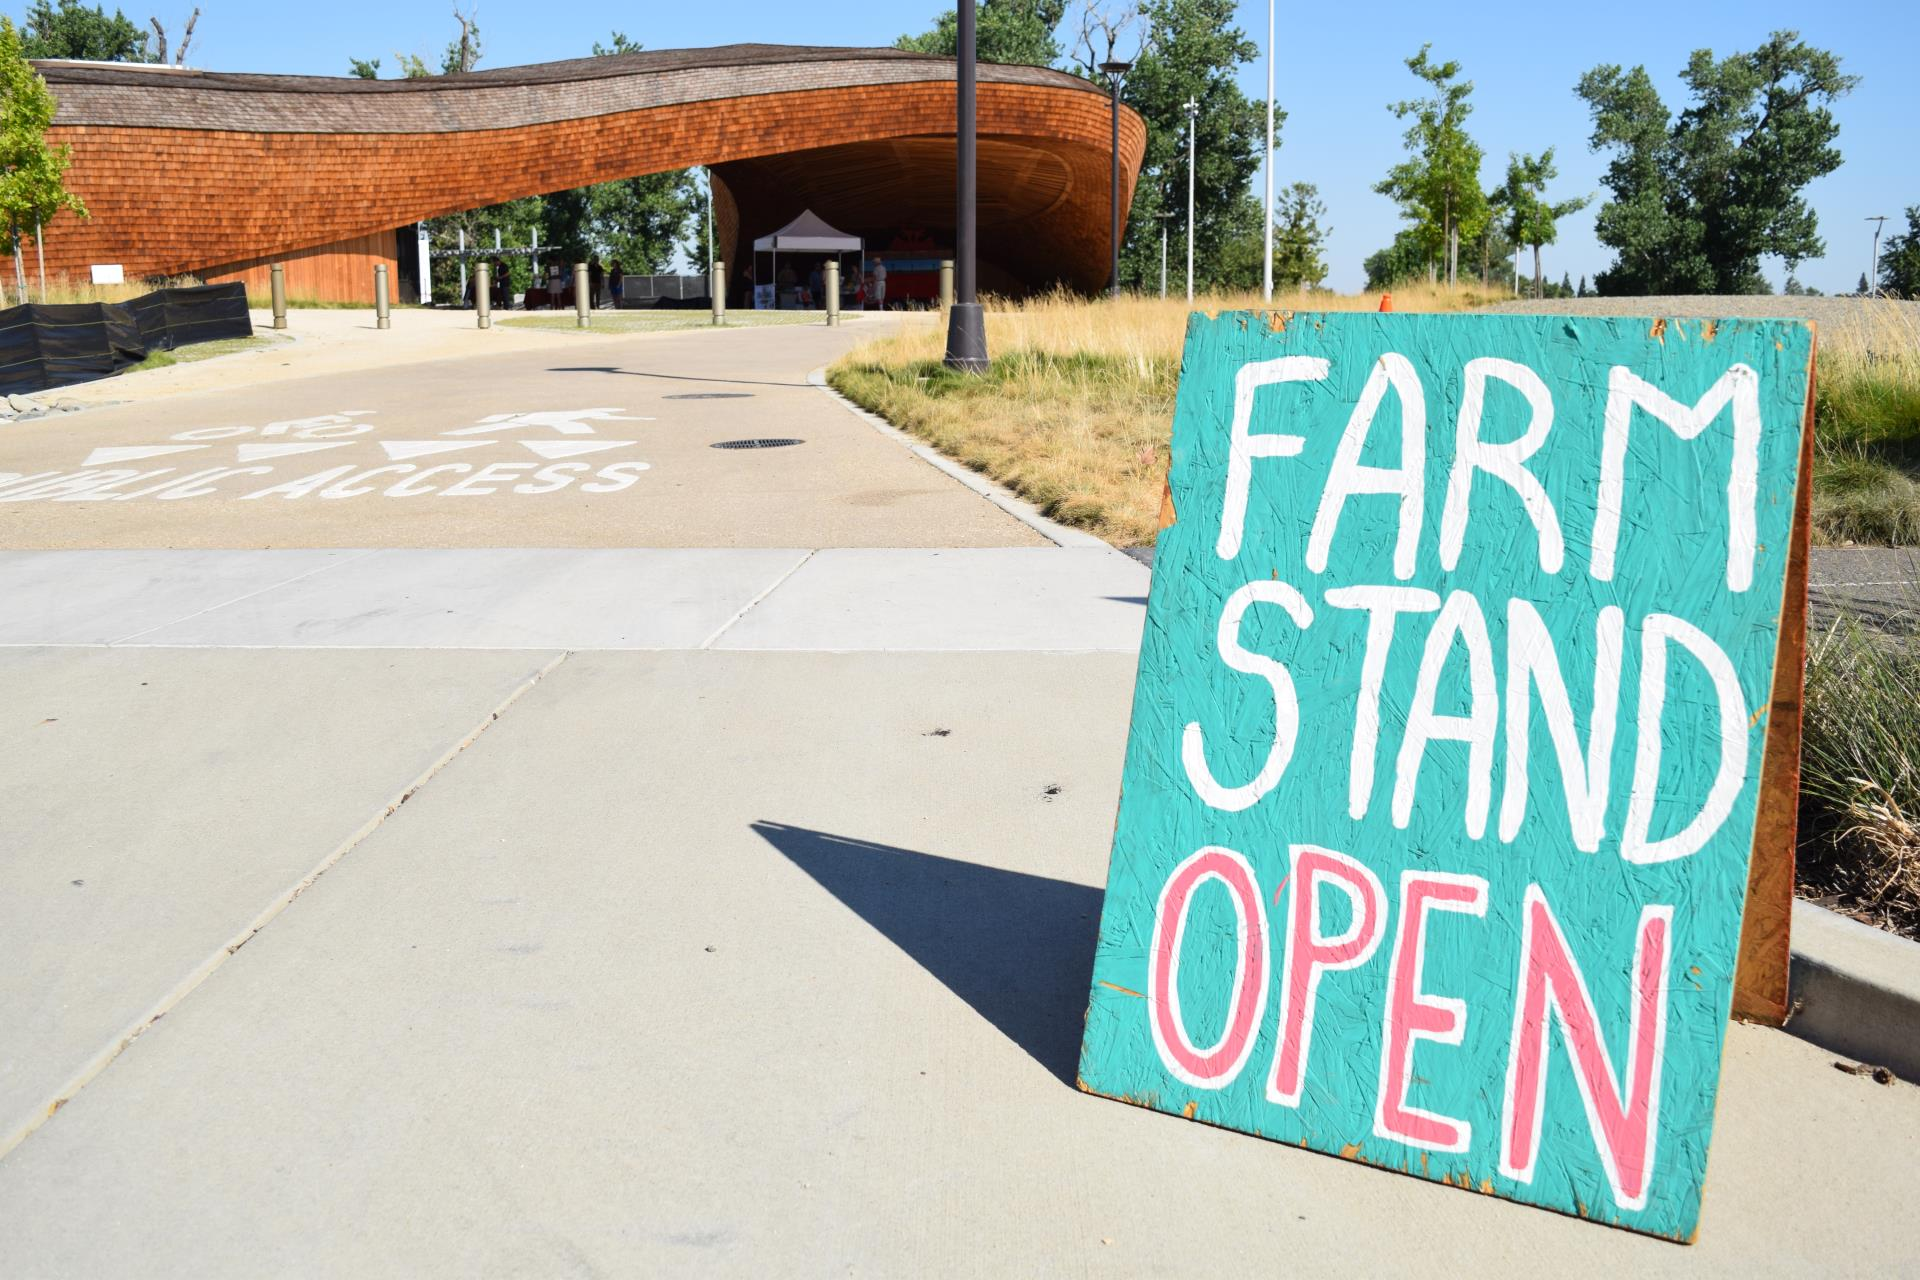 farm stand sign in front of the barn